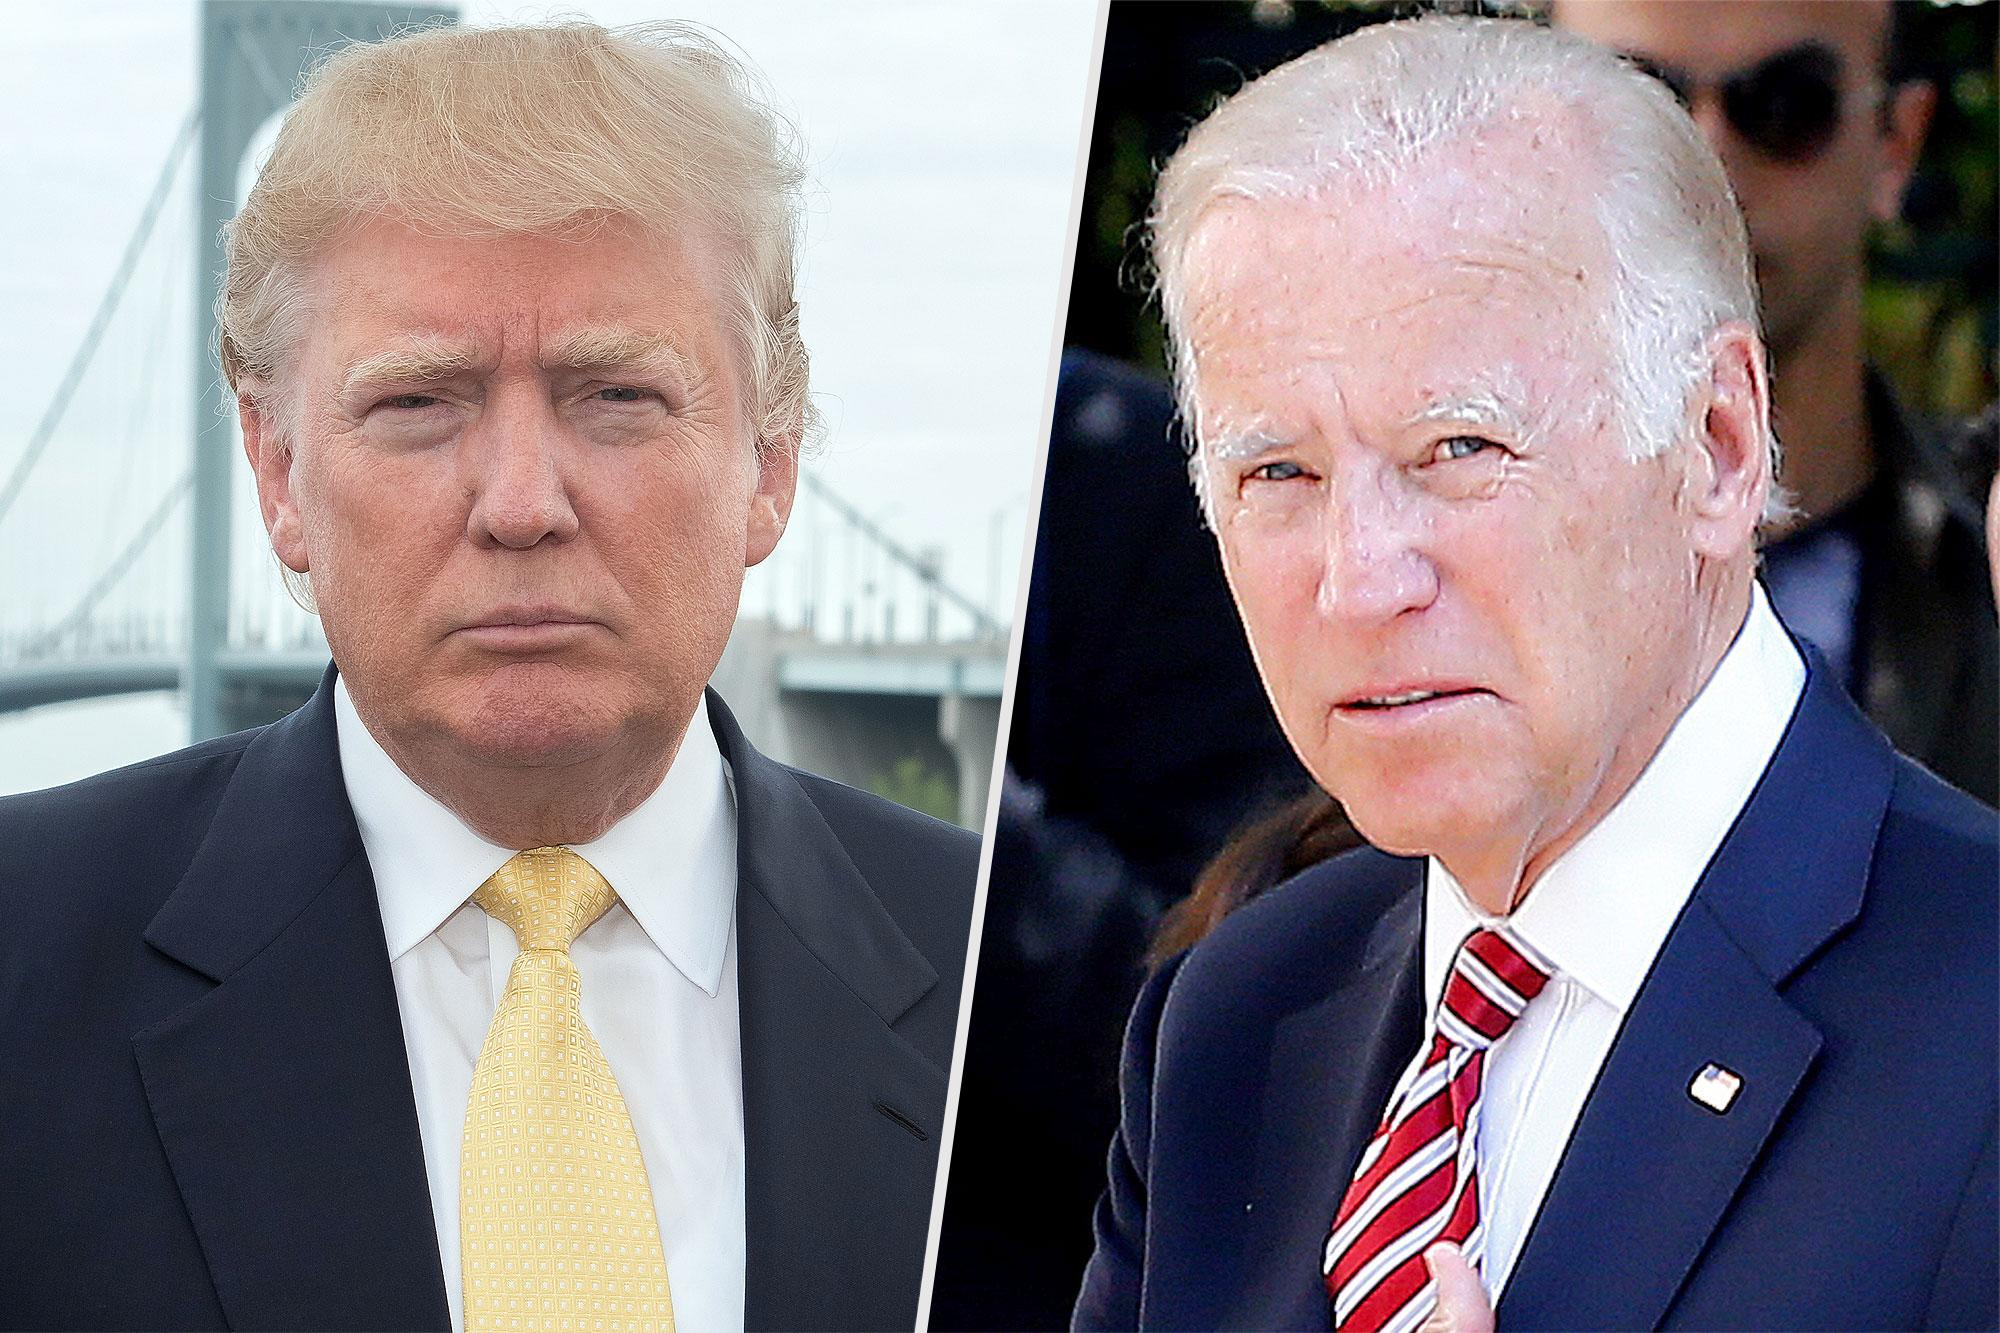 Trump Boasts Biden 'Would Go Down Fast and Hard' After Former VP Says He'd Have Fought Trump in HS